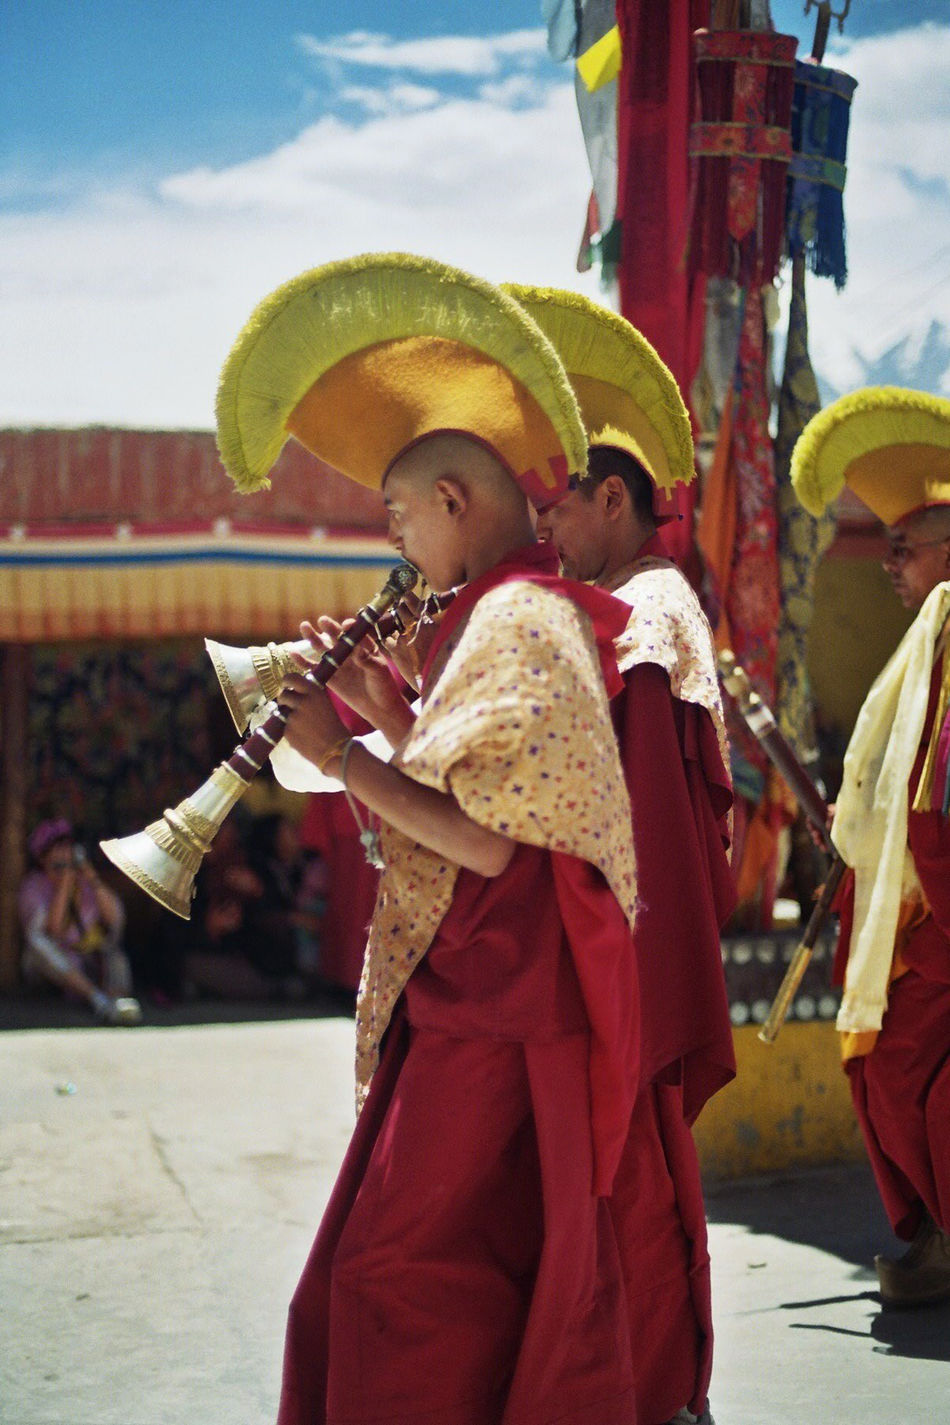 35mm Film Analogue Photography Animals Buddhism Dance Gelugpa India Ladakh Monks Tibetan  Tibetan Buddhism Vajrayana Yellow Hat Zanskar  Miles Away